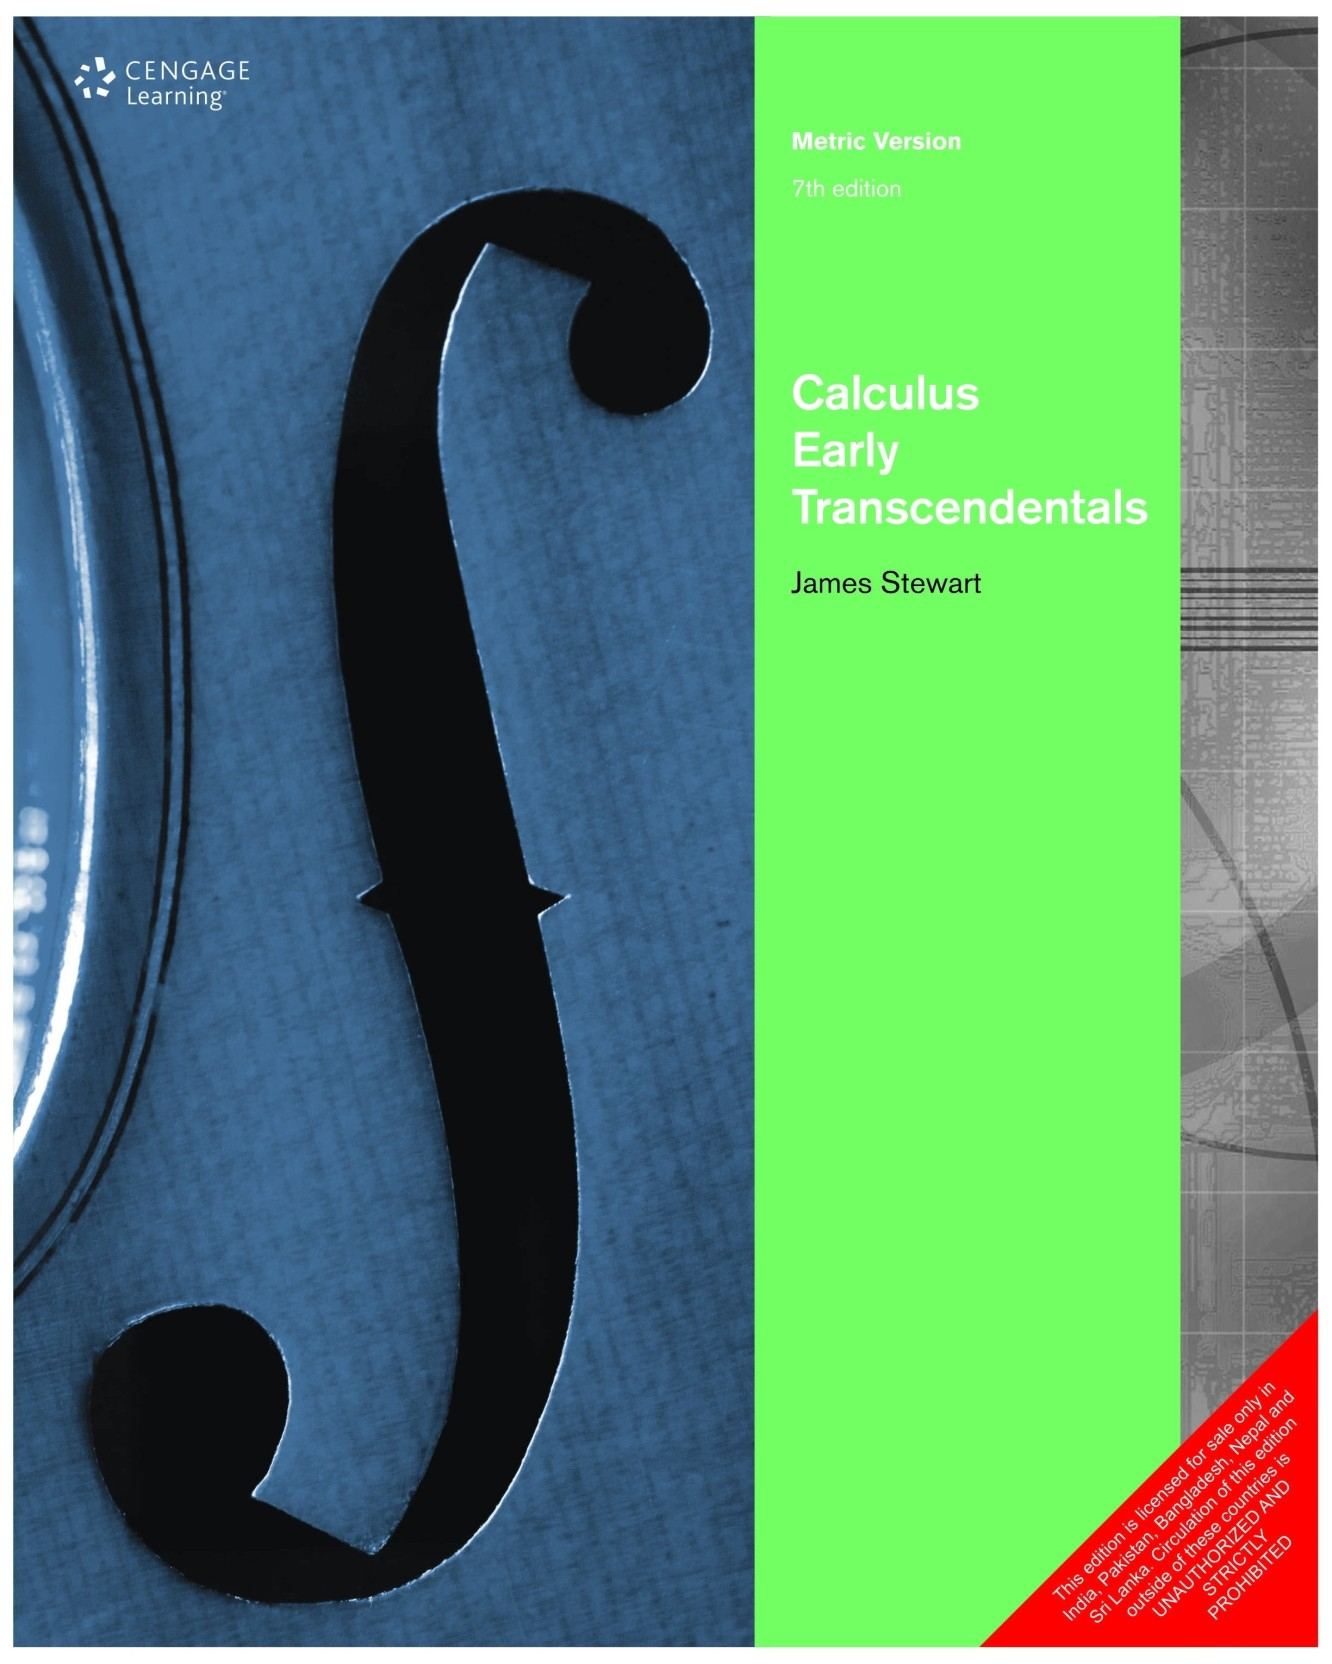 Calculus - Early Transcendentals 7th Edition. ADD TO CART